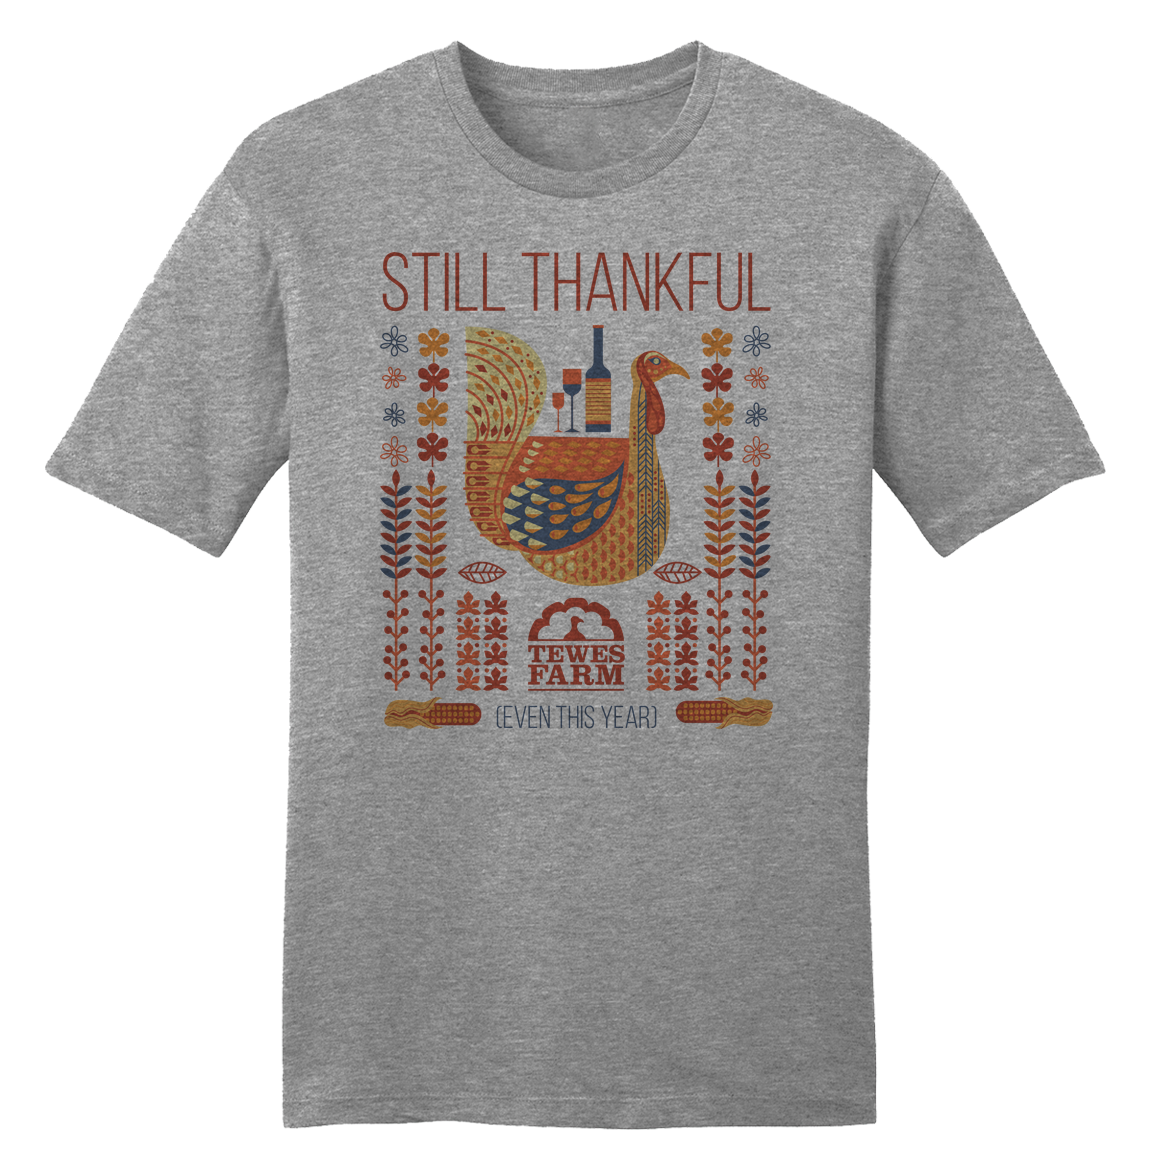 Still Thankful - Cincy Shirts